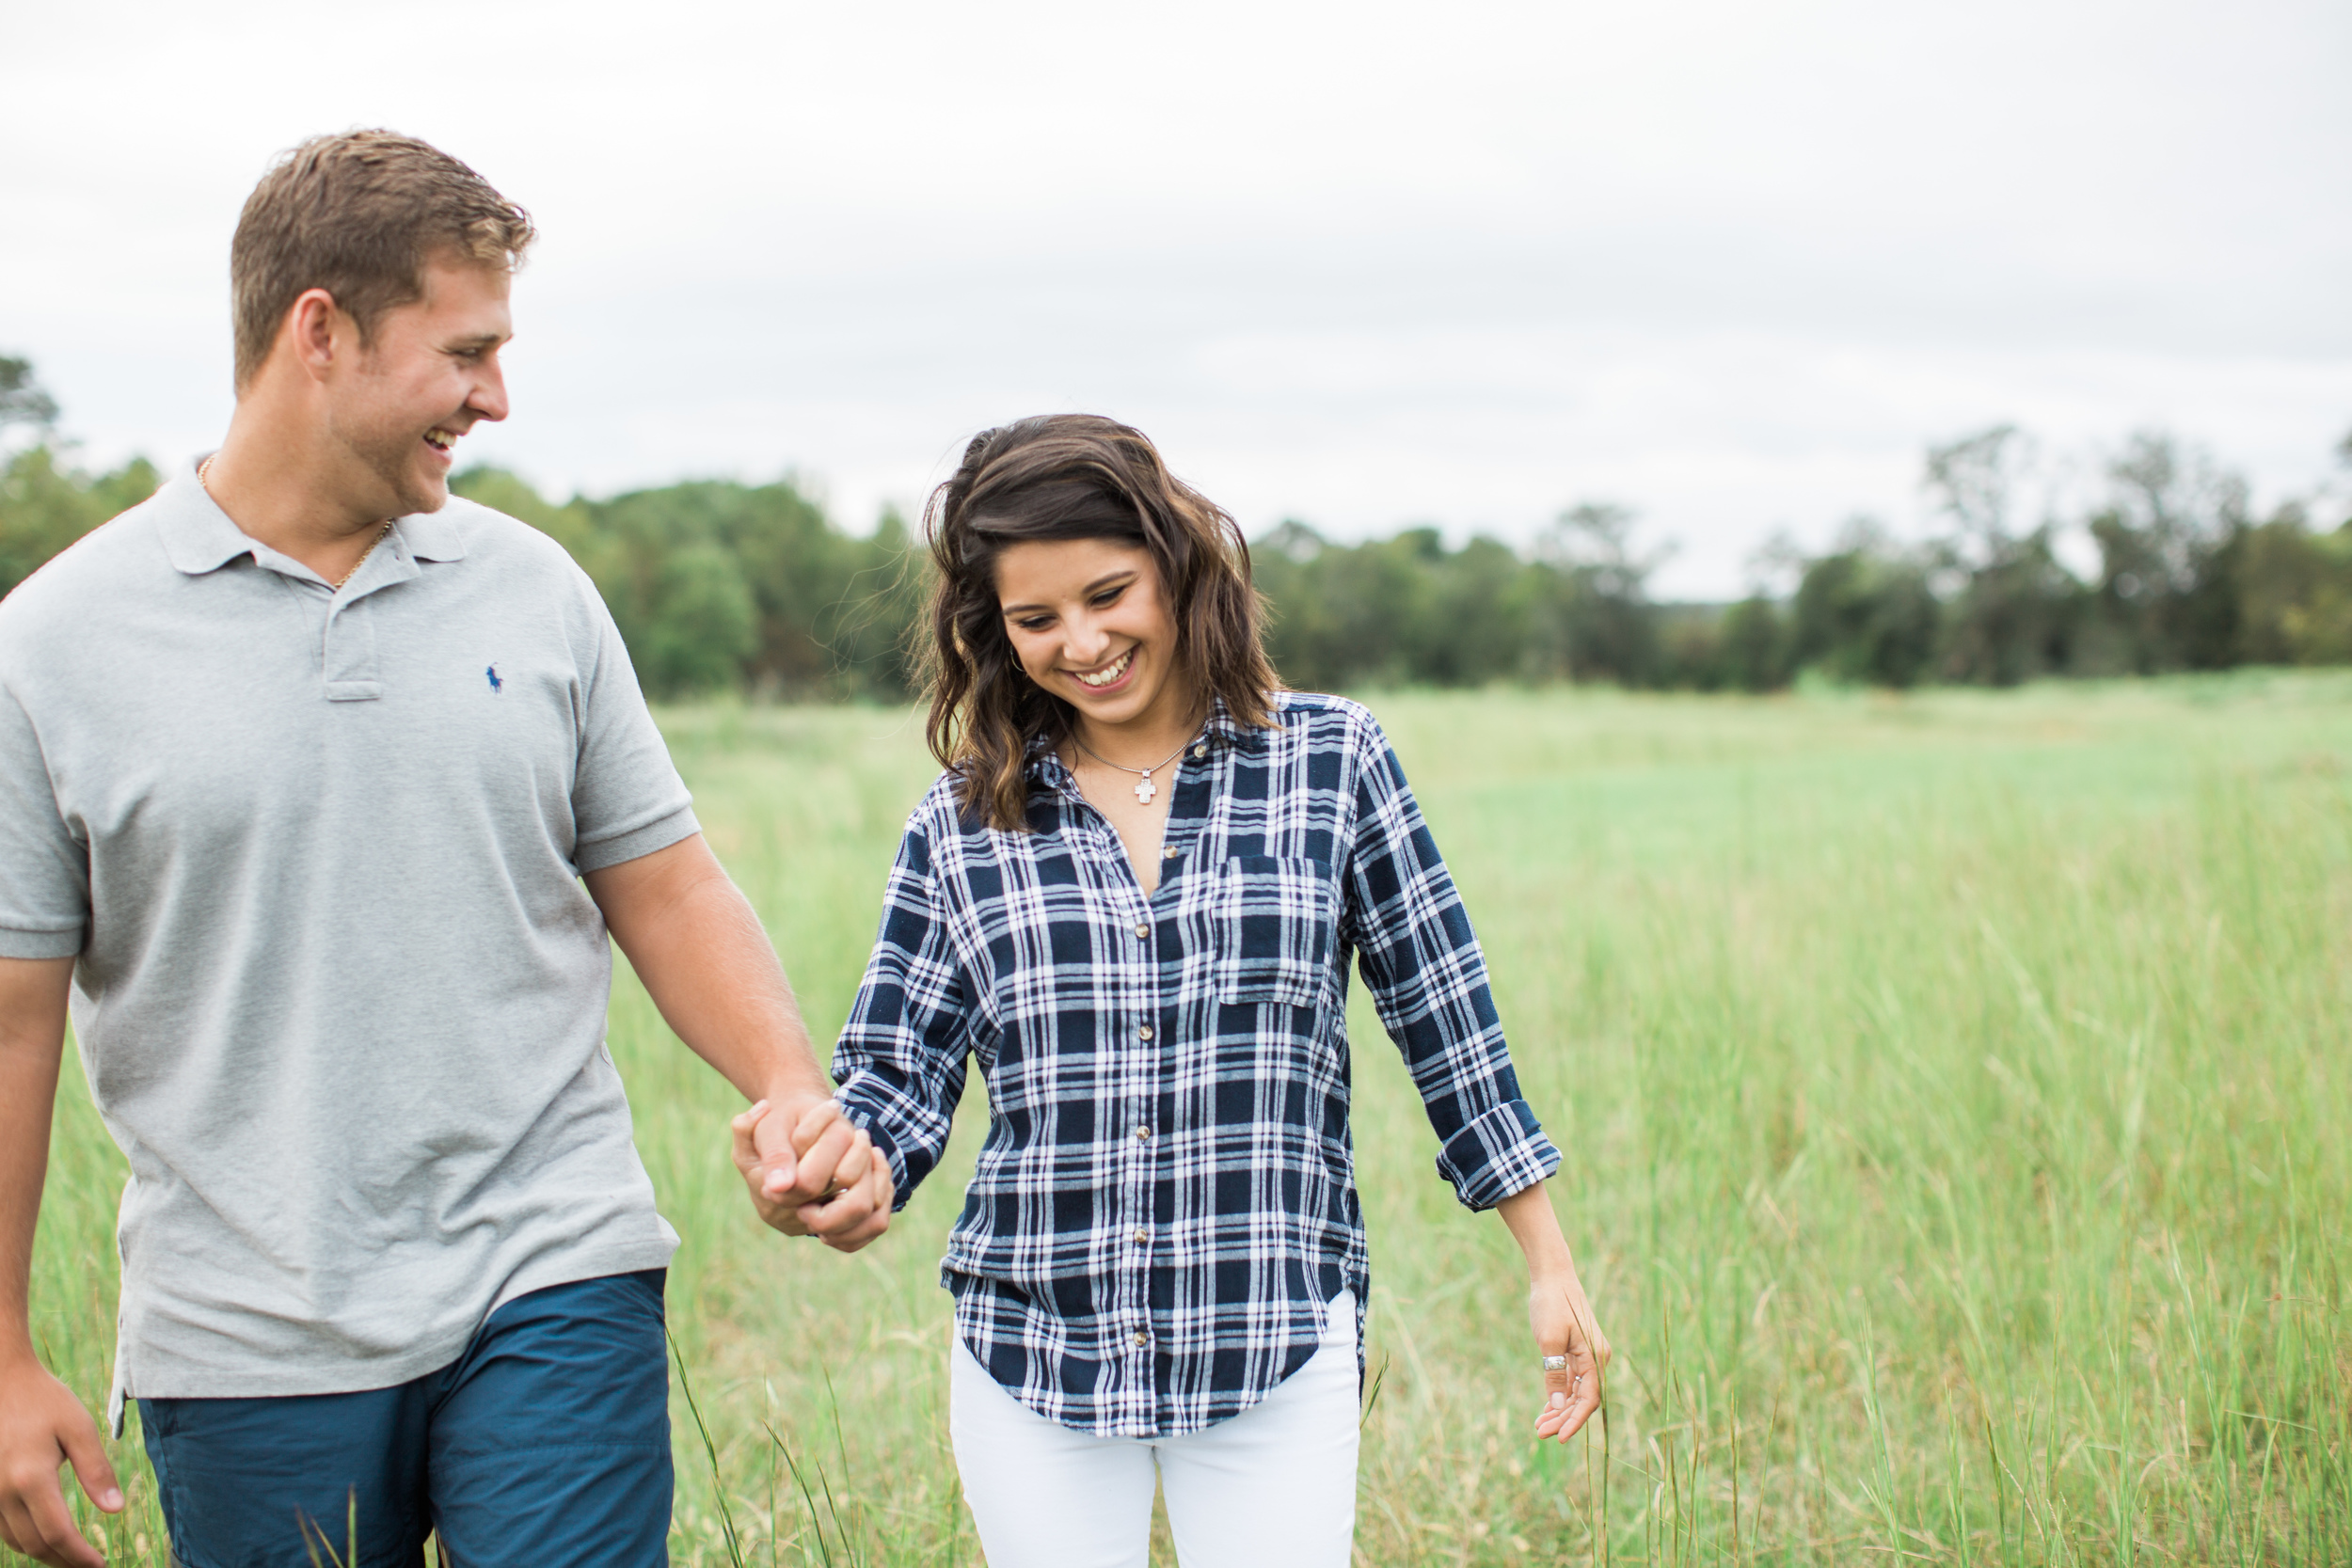 Selma-Alabama-Wedding-Photography-Engagements-Jessica-George-12.jpg